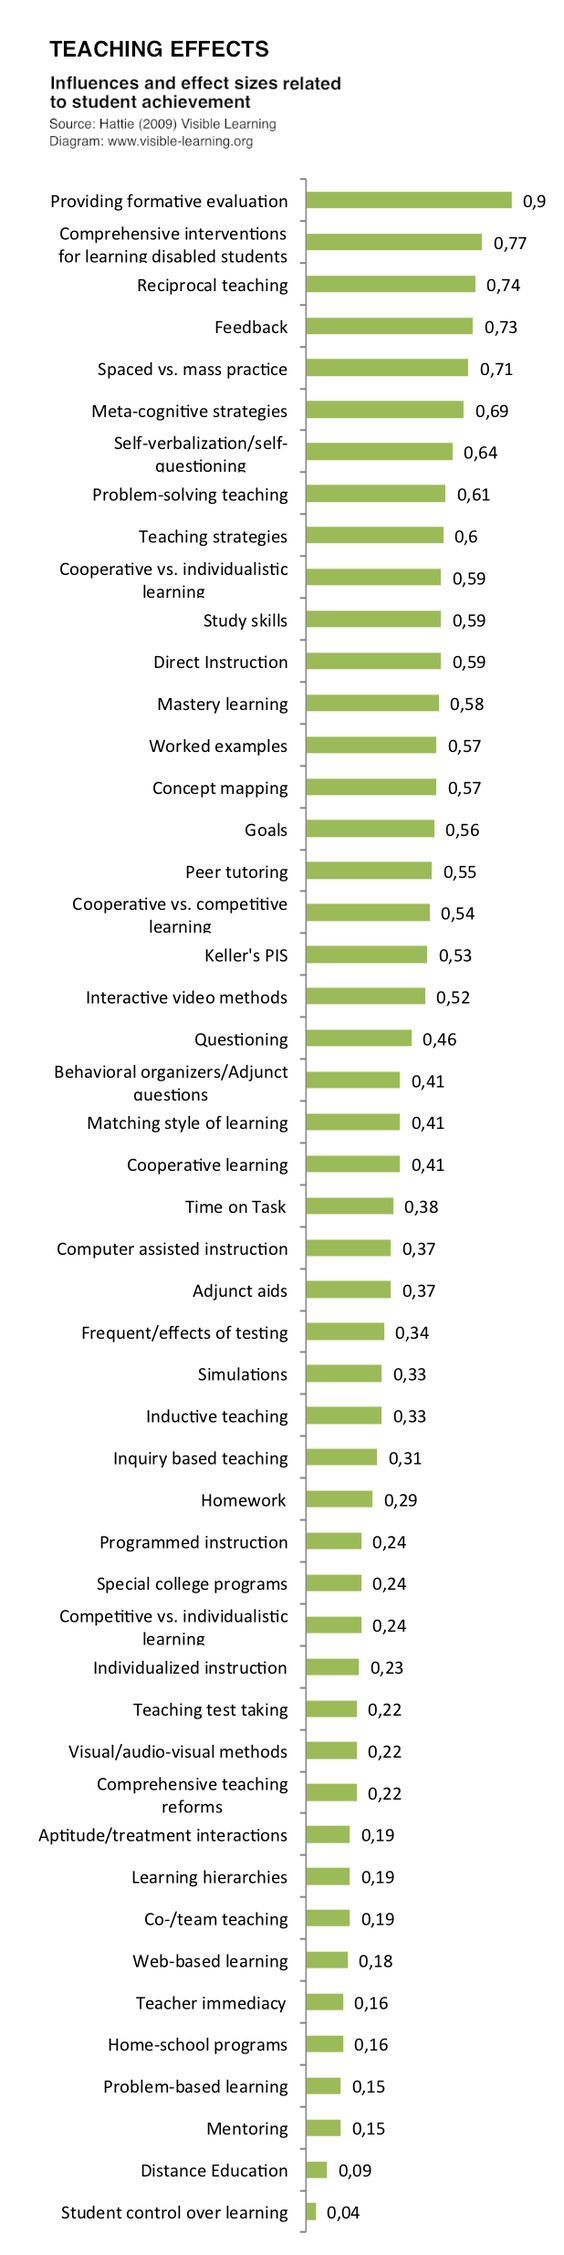 A synthesis of research on teaching and learning. It's interesting to recognize features of IBL in the list.